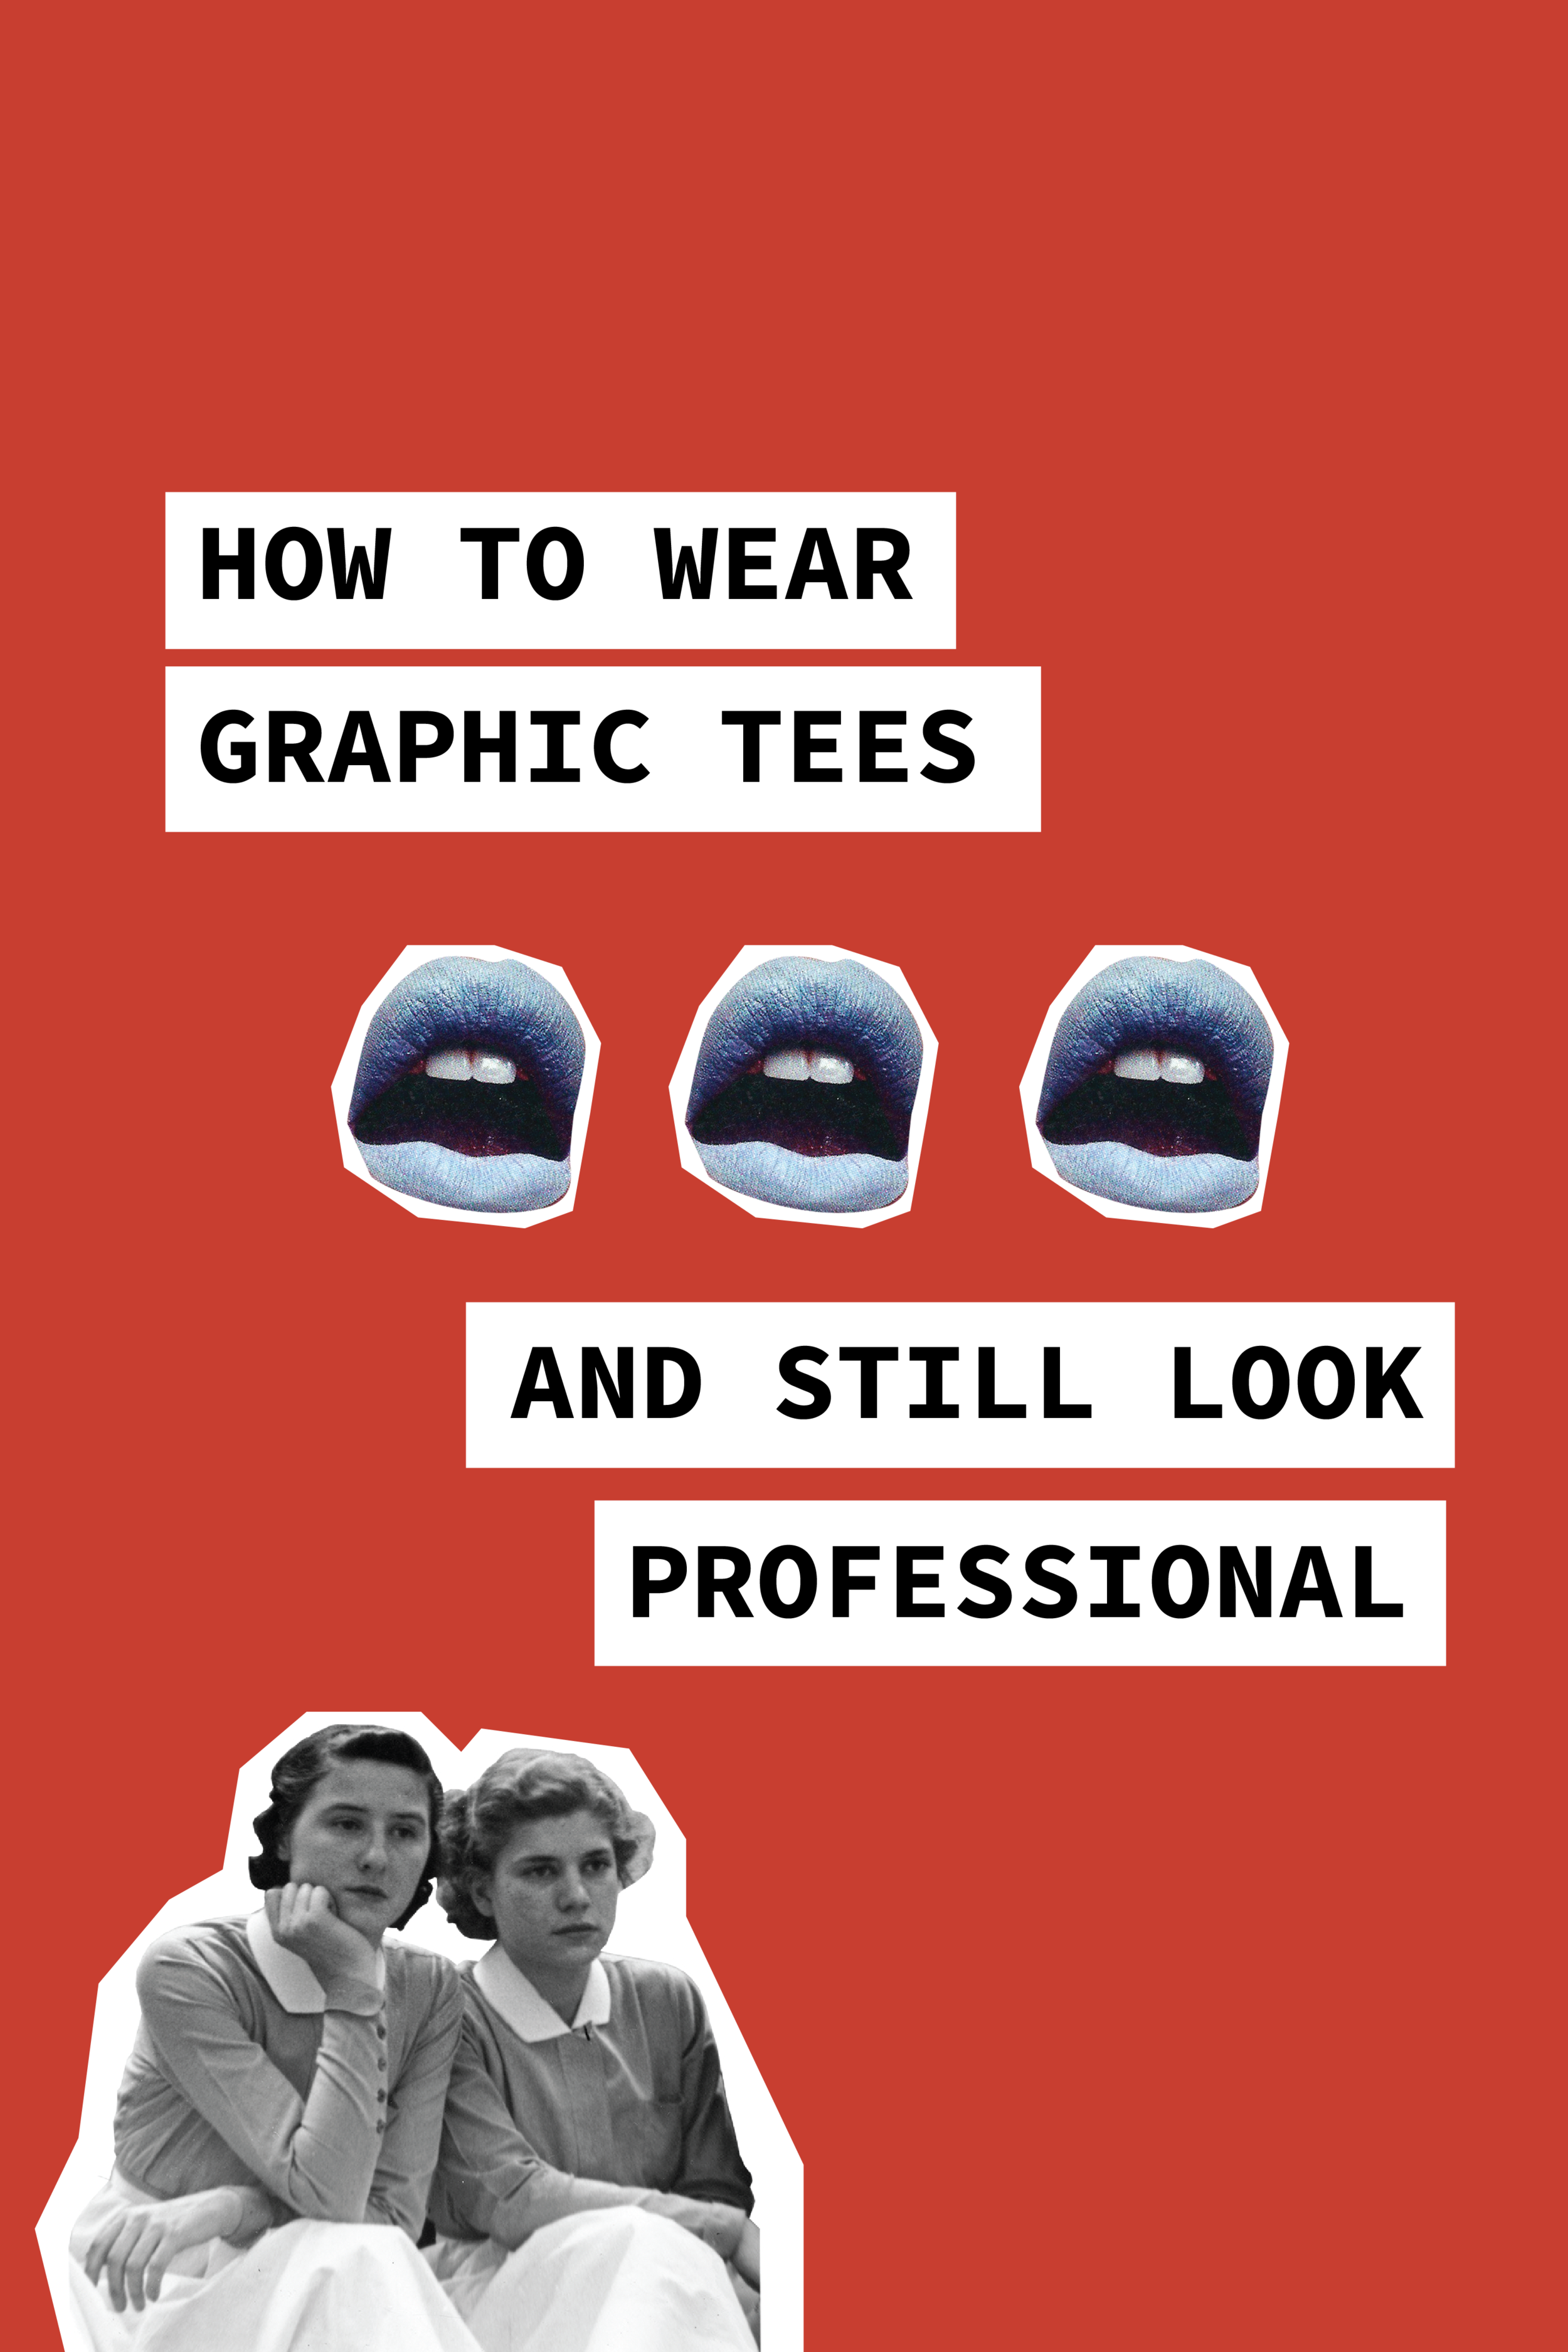 How To Wear Graphic Tees And Still Look Professional